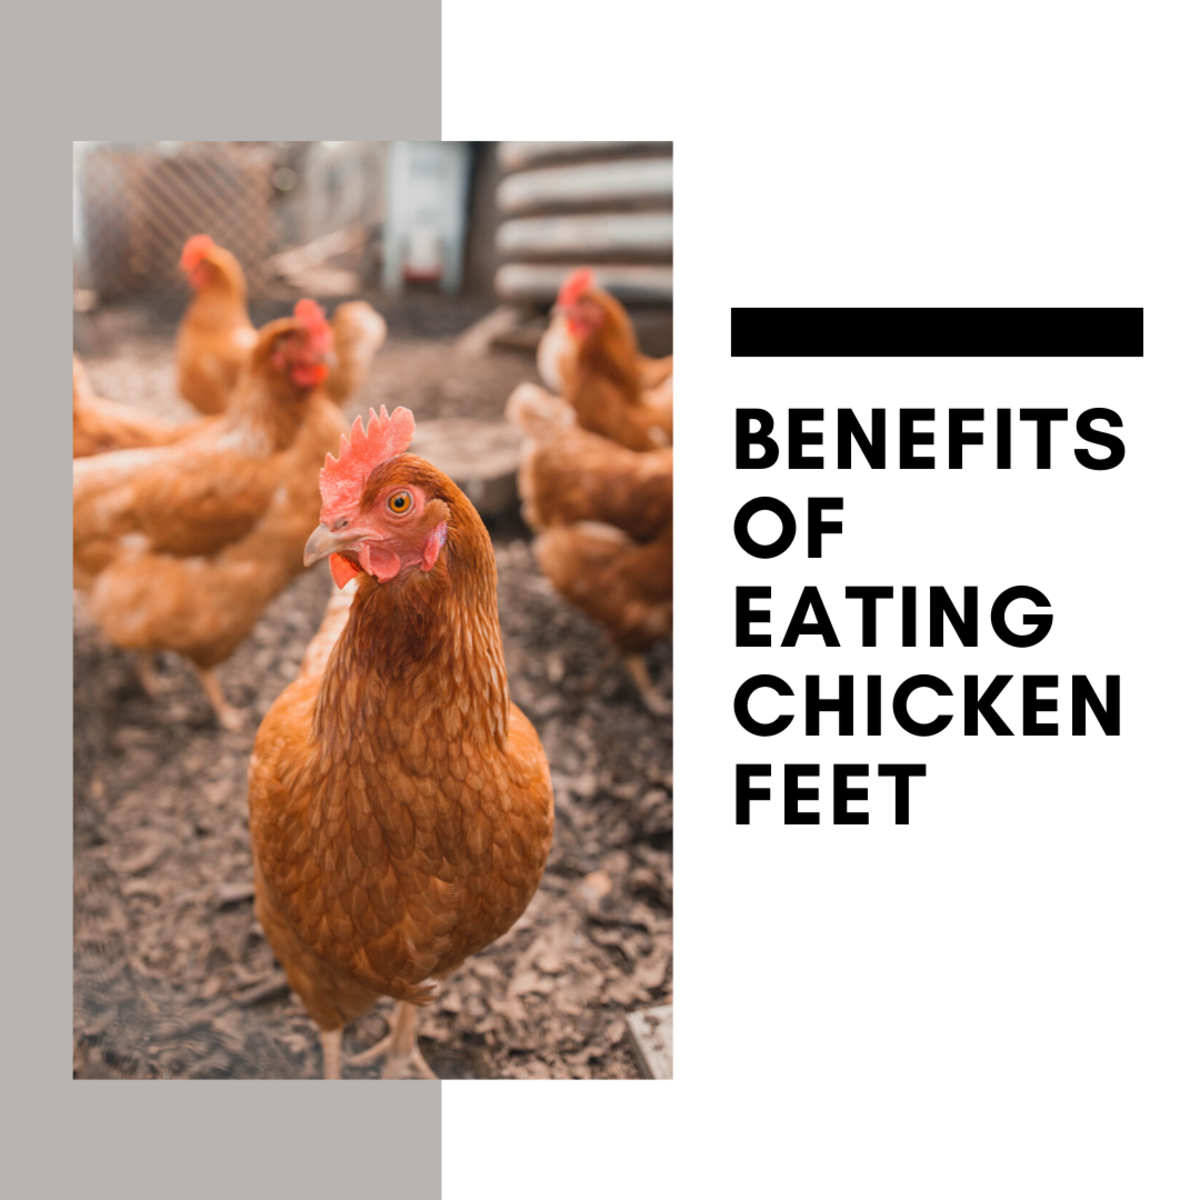 Chicken feet provide a surprising amount of health benefits. Read on to learn more.